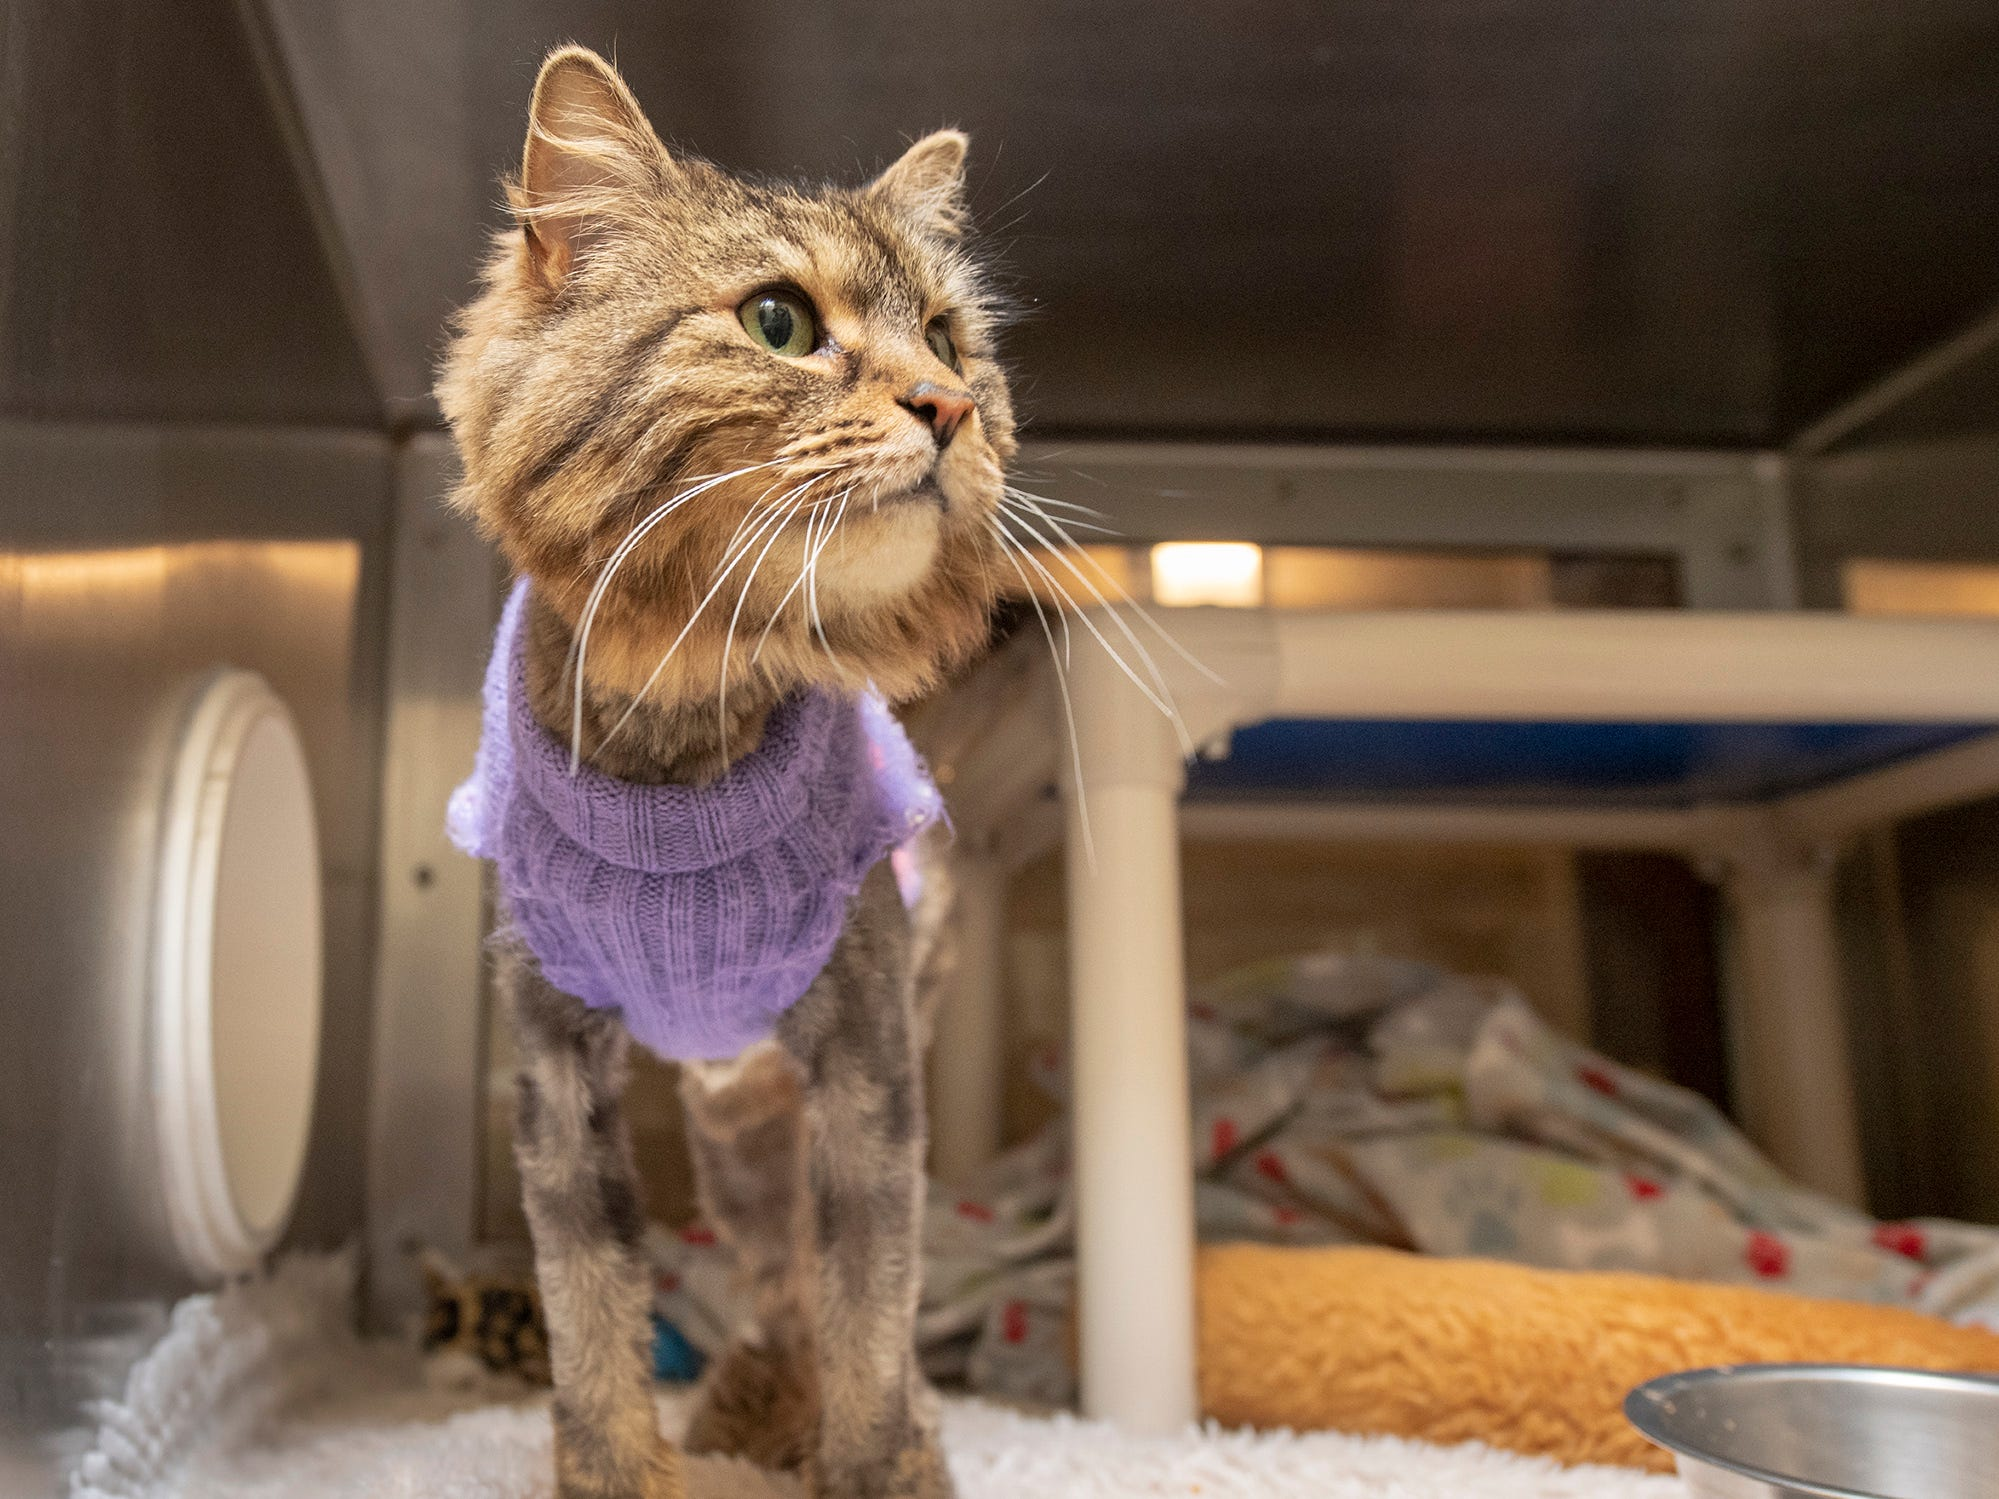 I'm Molly and I came to the York County SPCA because my owner is going into a home and can no longer keep me. I may be 12 years-old, but I am very sweet and would love a home with people to love me again in my senior years. I come with my purple sweater.